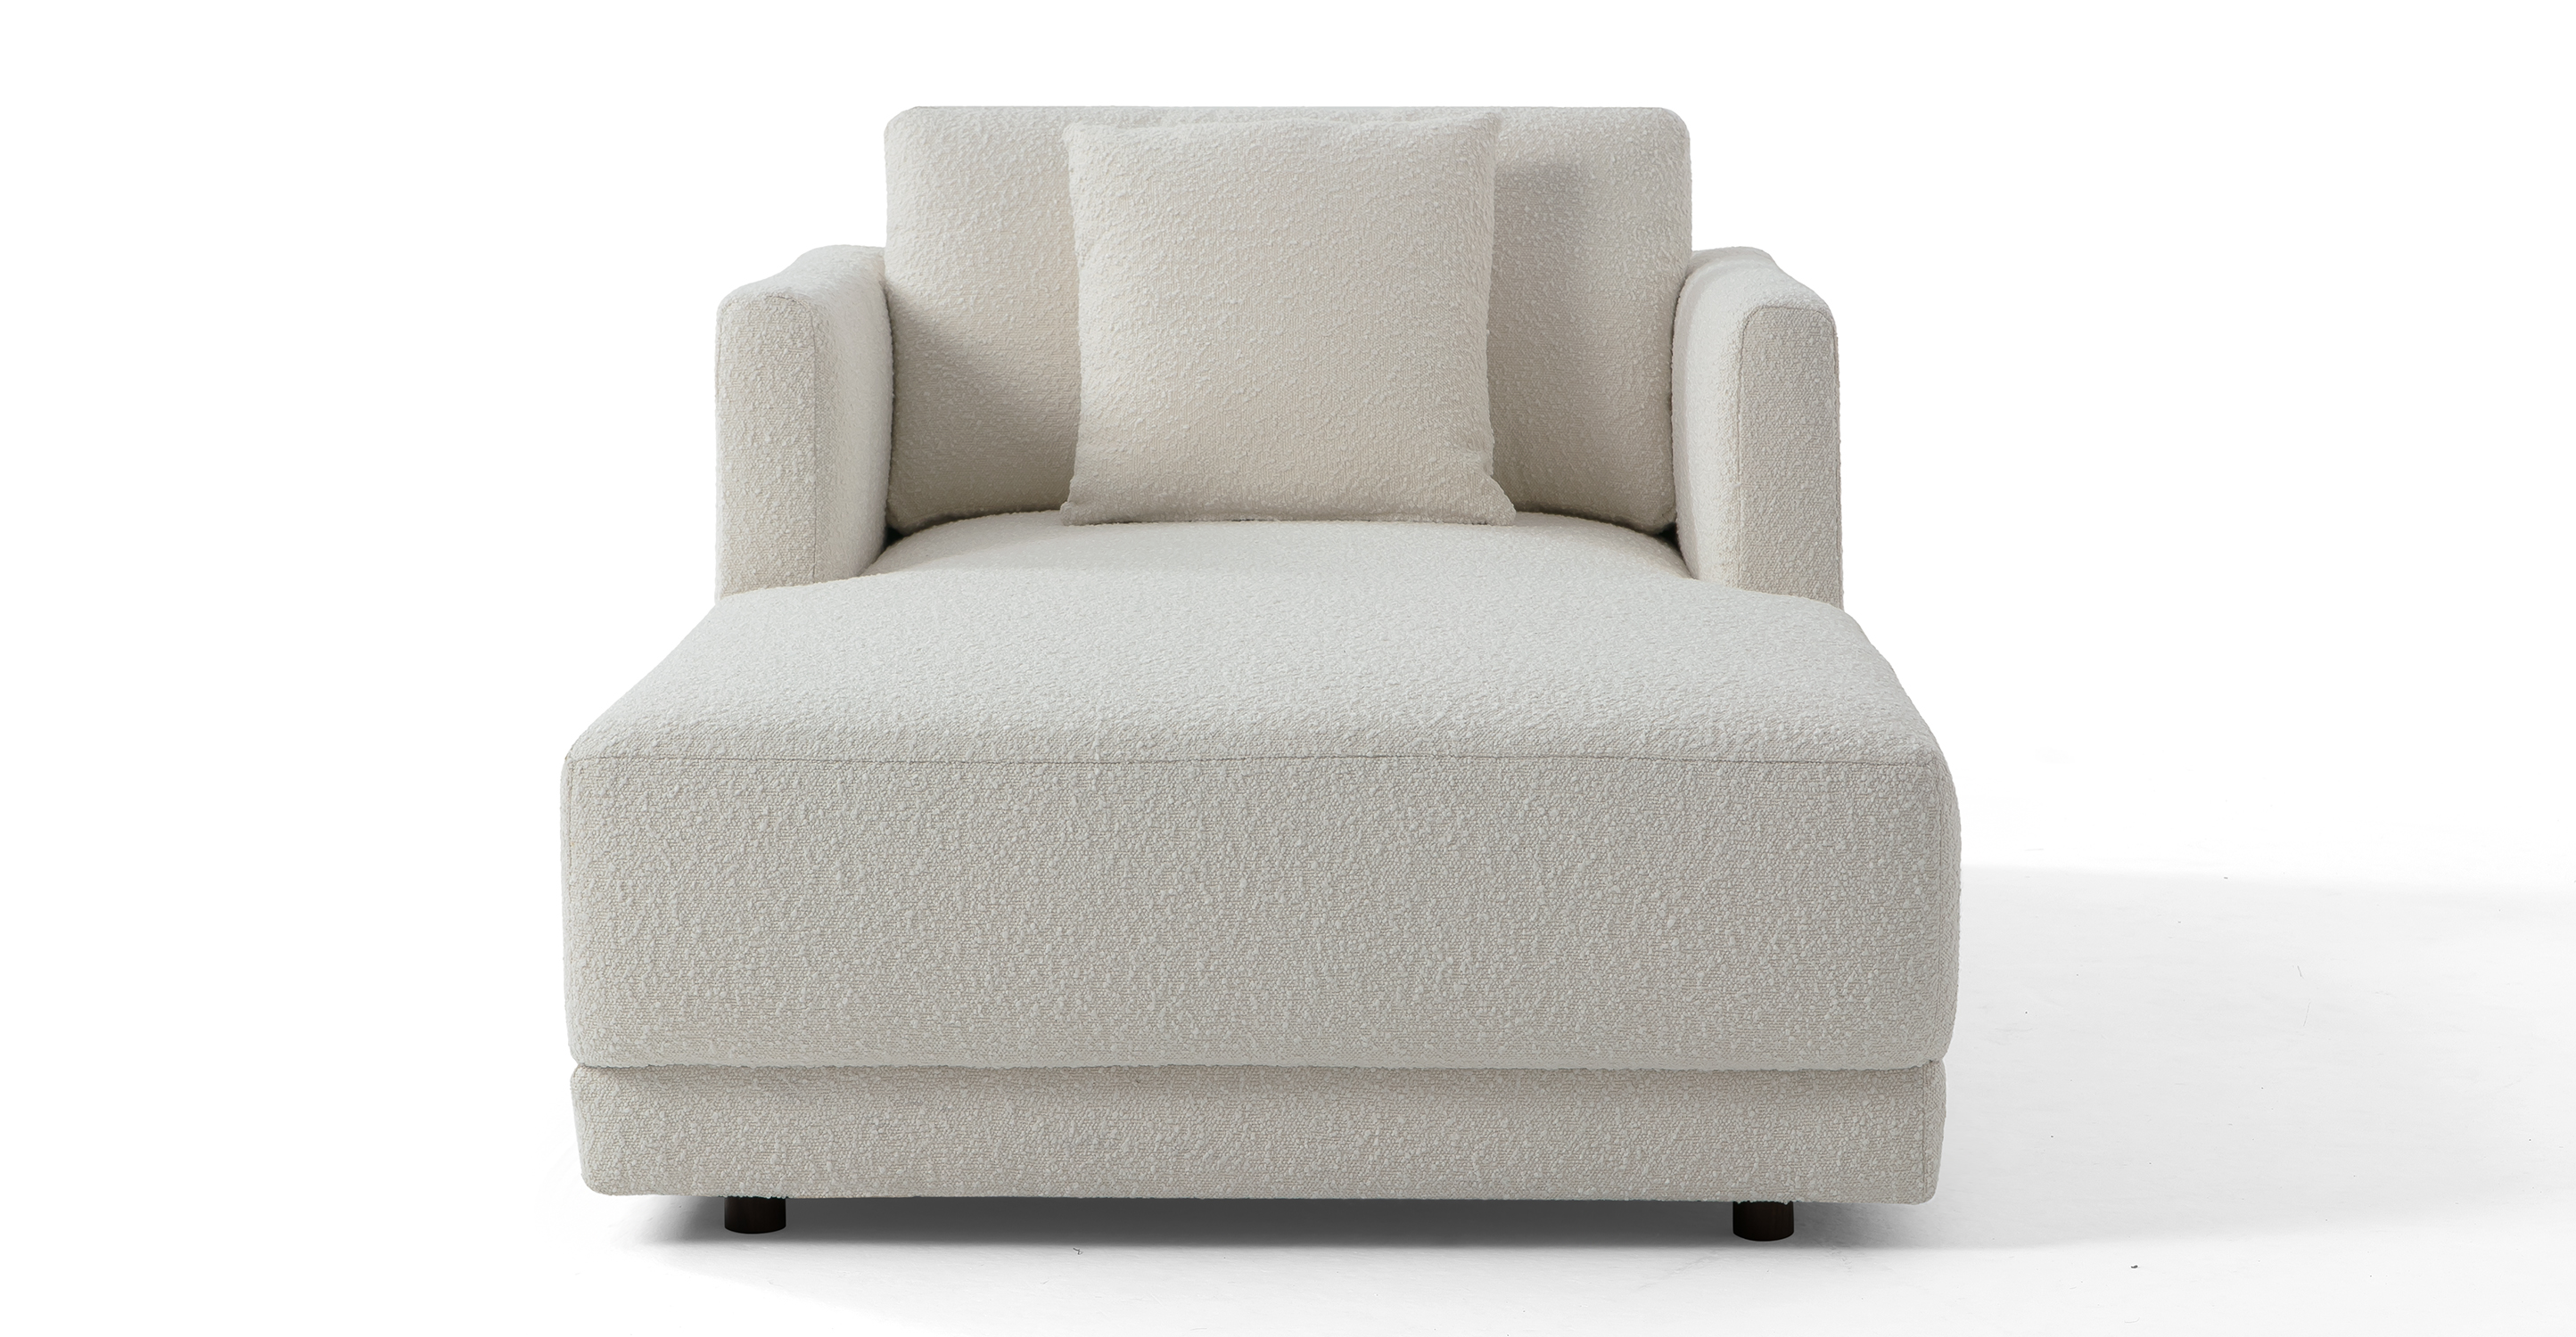 "Domus 39"" Fabric Chaise Lounge, Blanc Boucle"